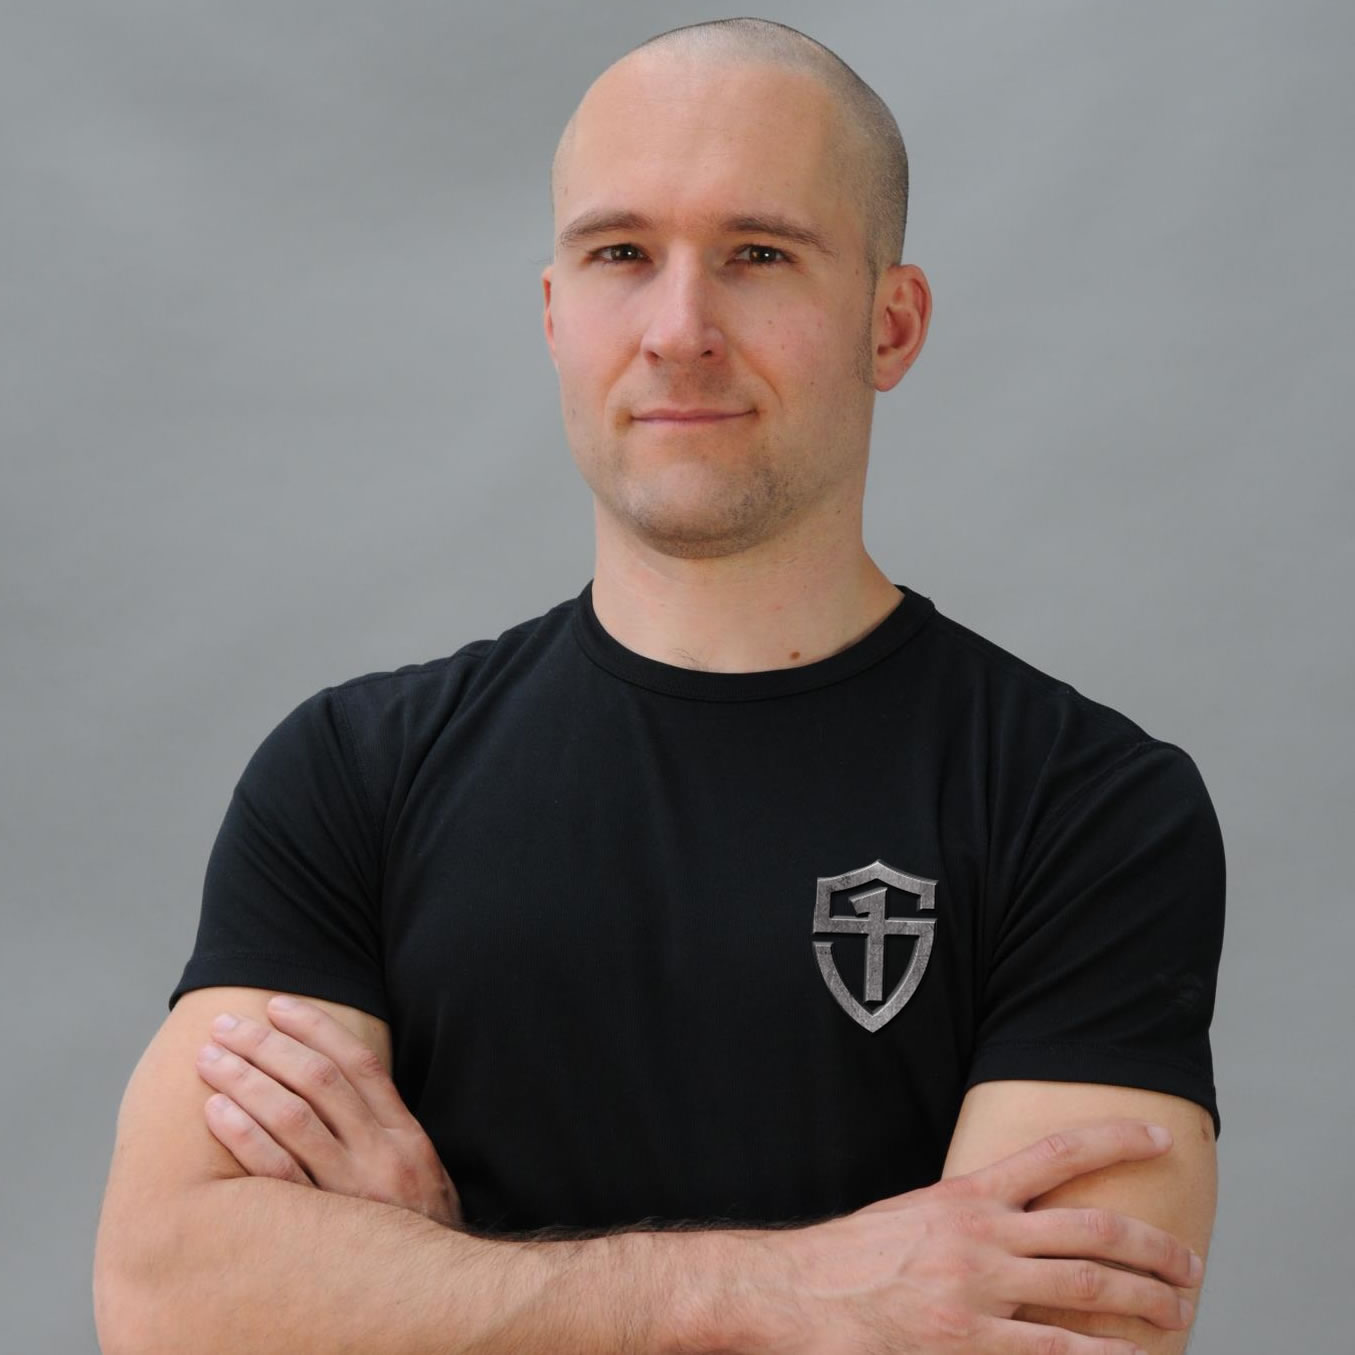 Pavel Macek, SFG Team Leader, SFL, SFB